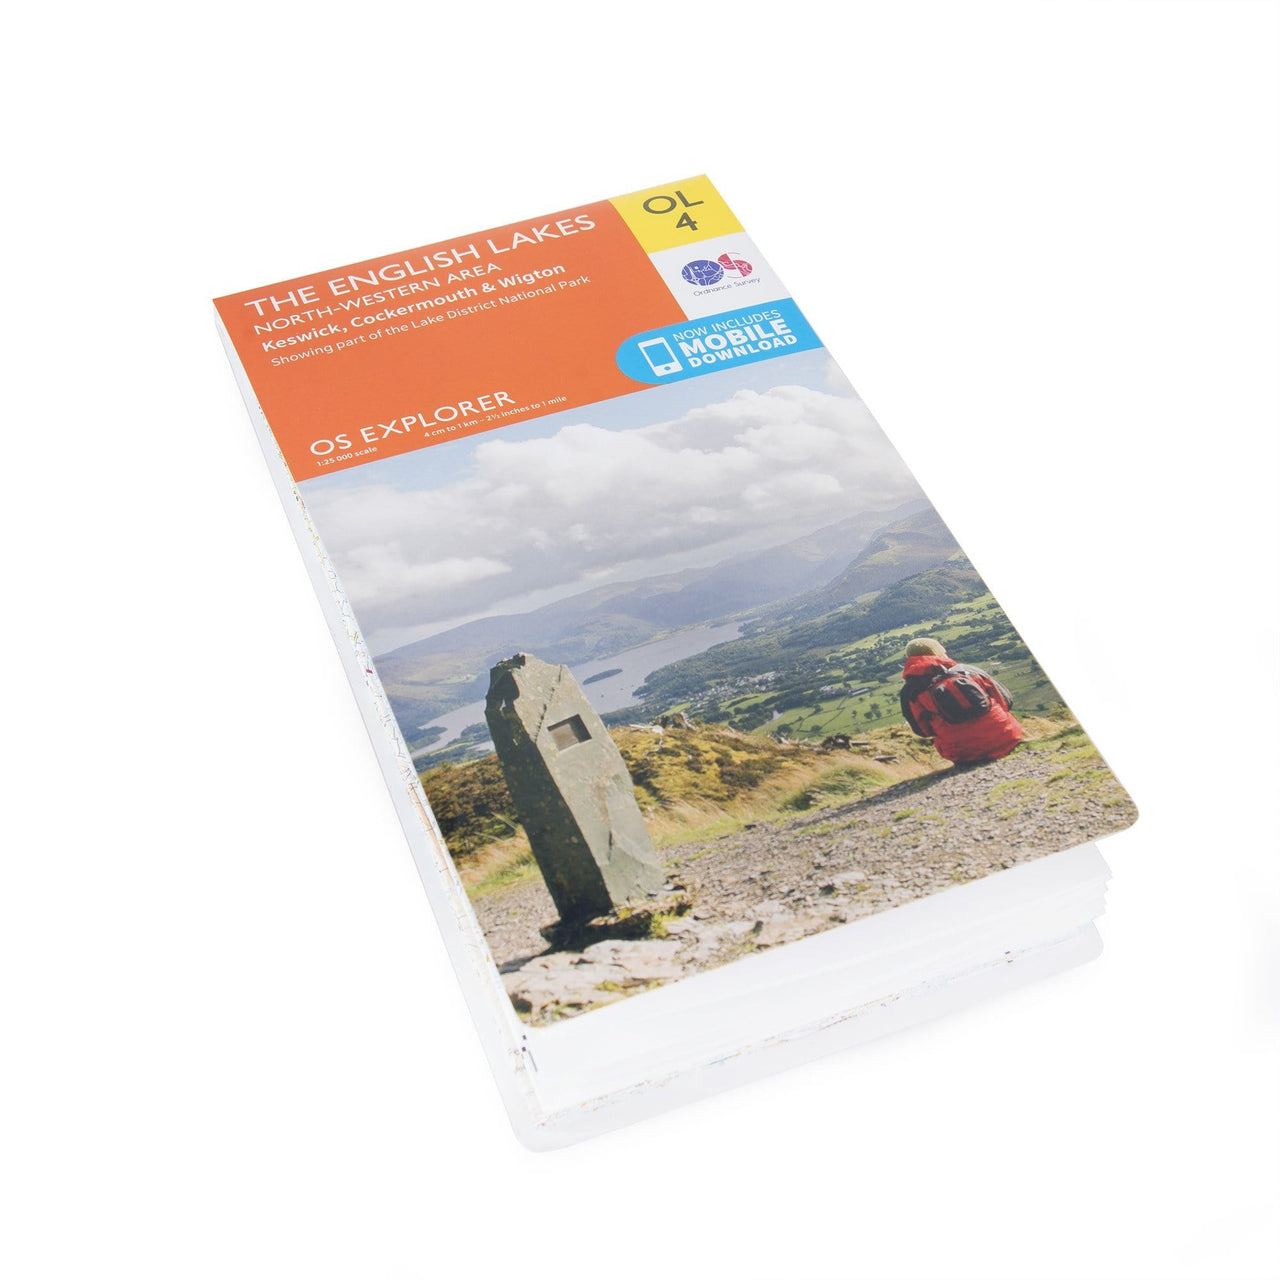 OS Explorer Maps: The English Lakes - North West